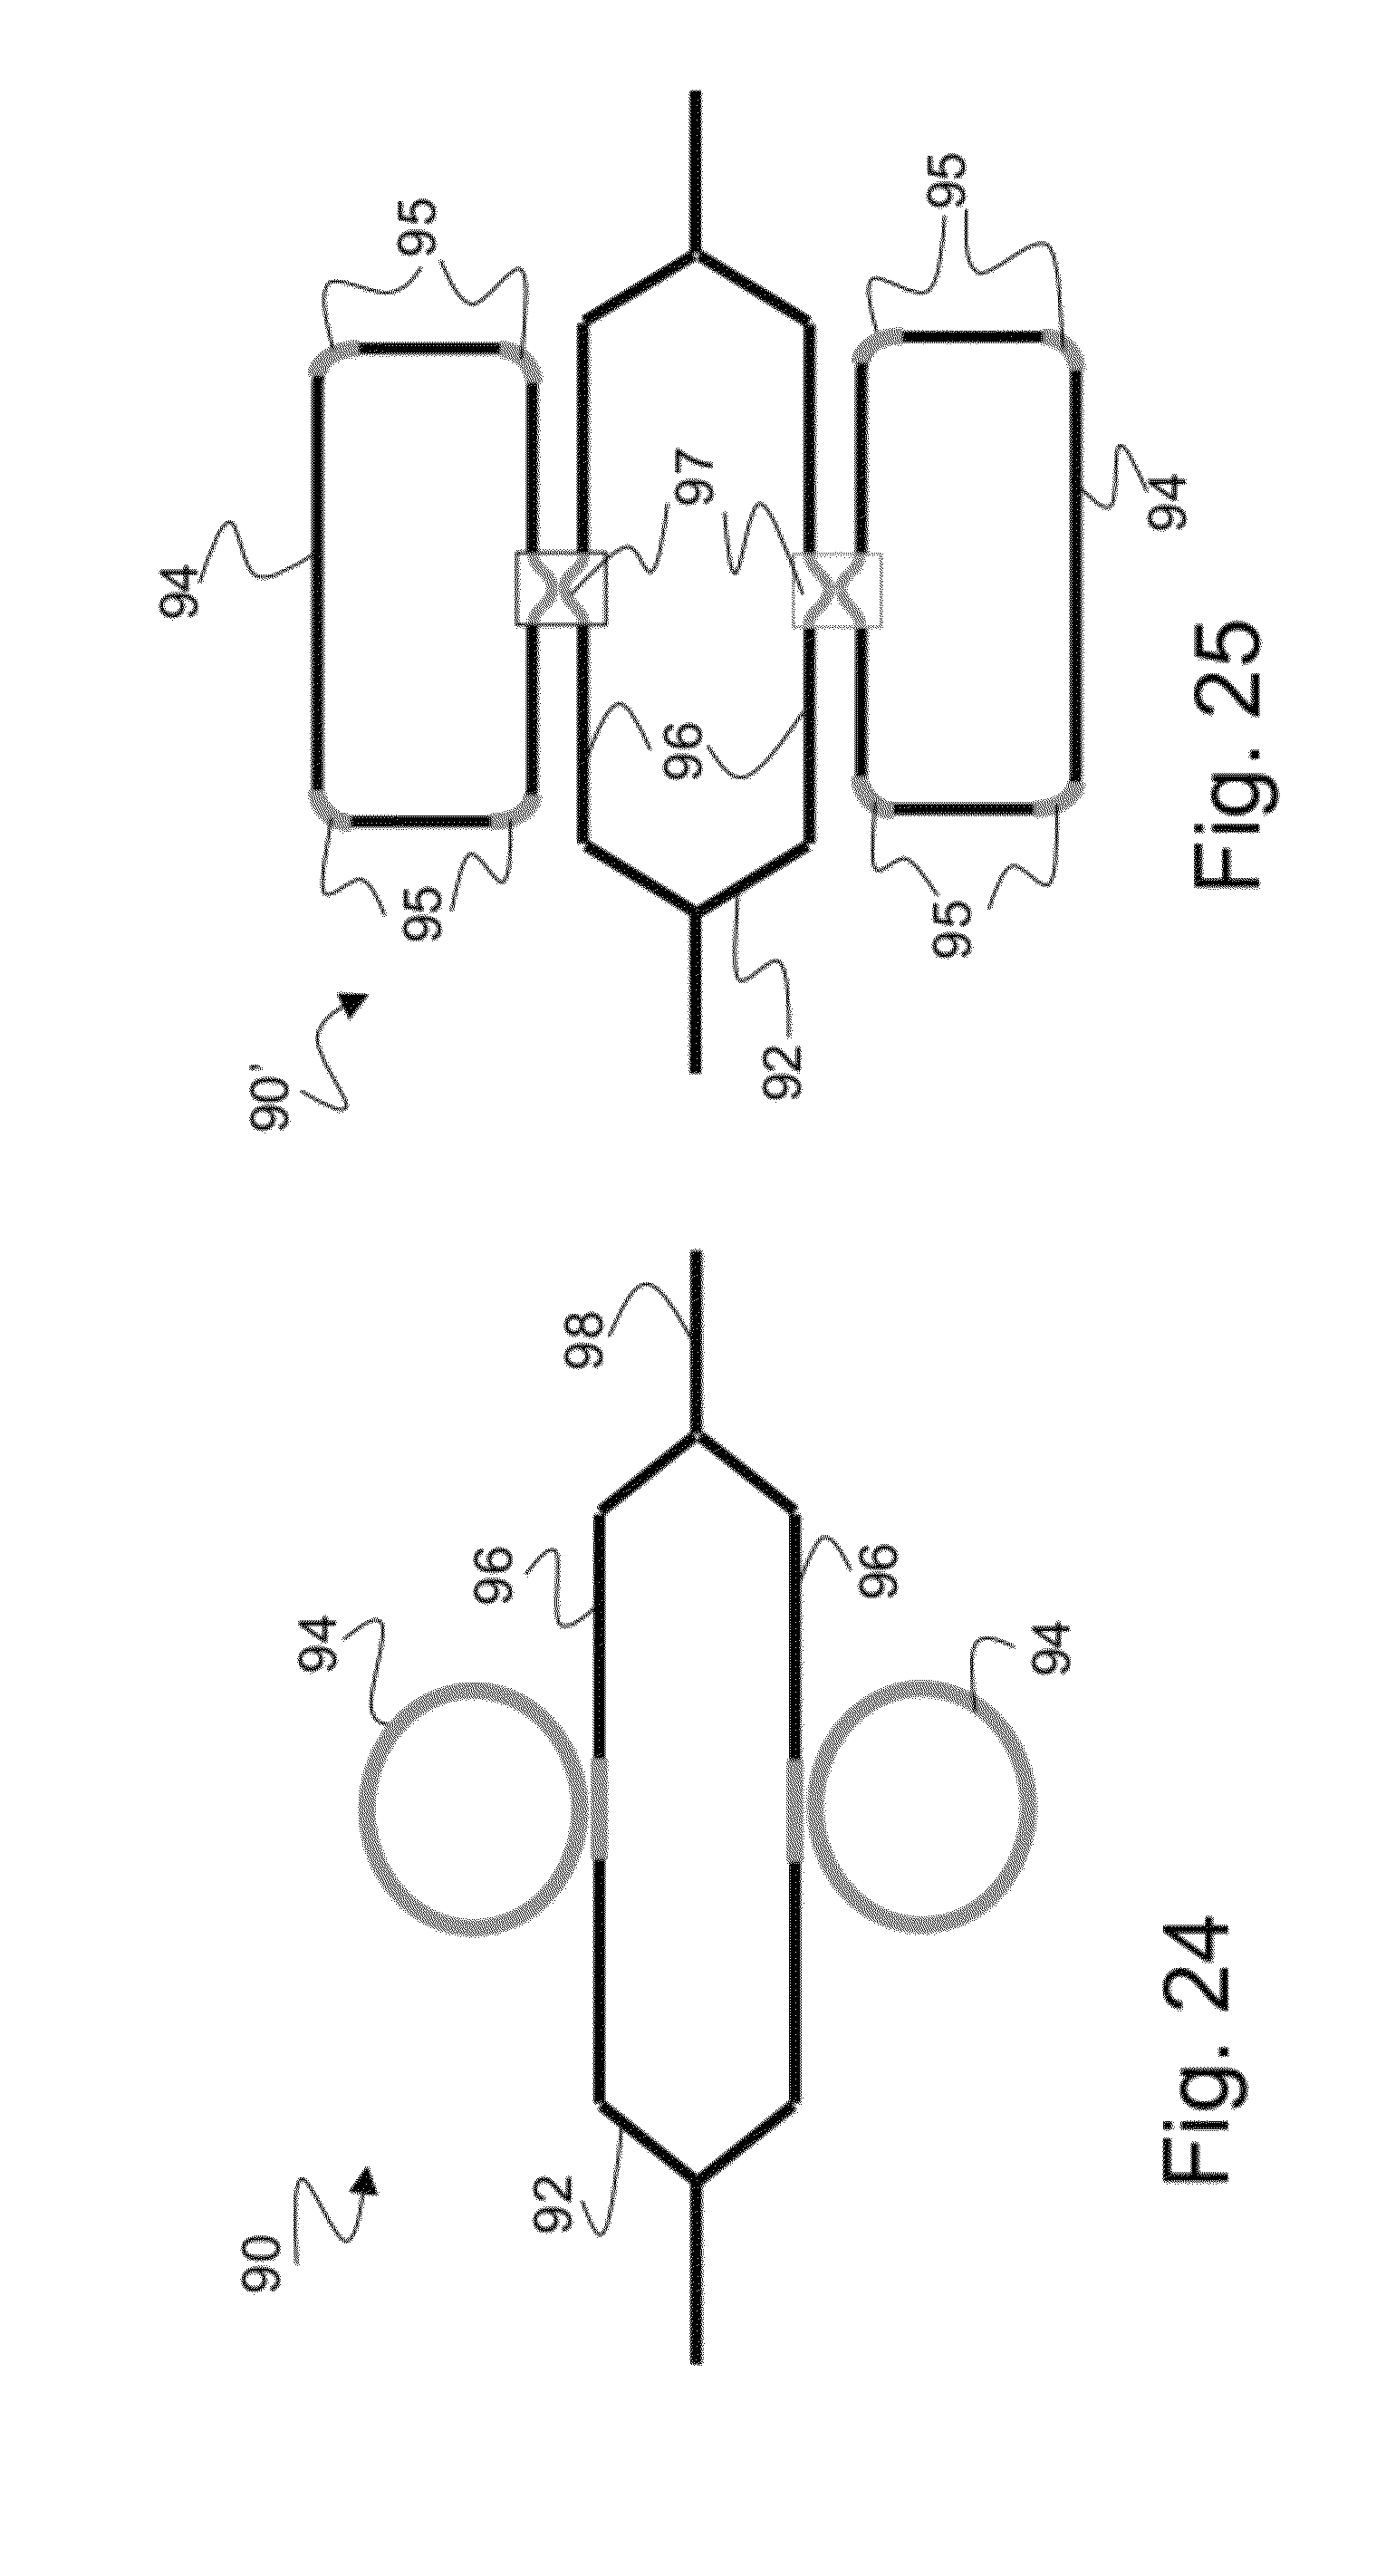 brevet us8774569 - high confinement waveguide on an electro-optic substrate